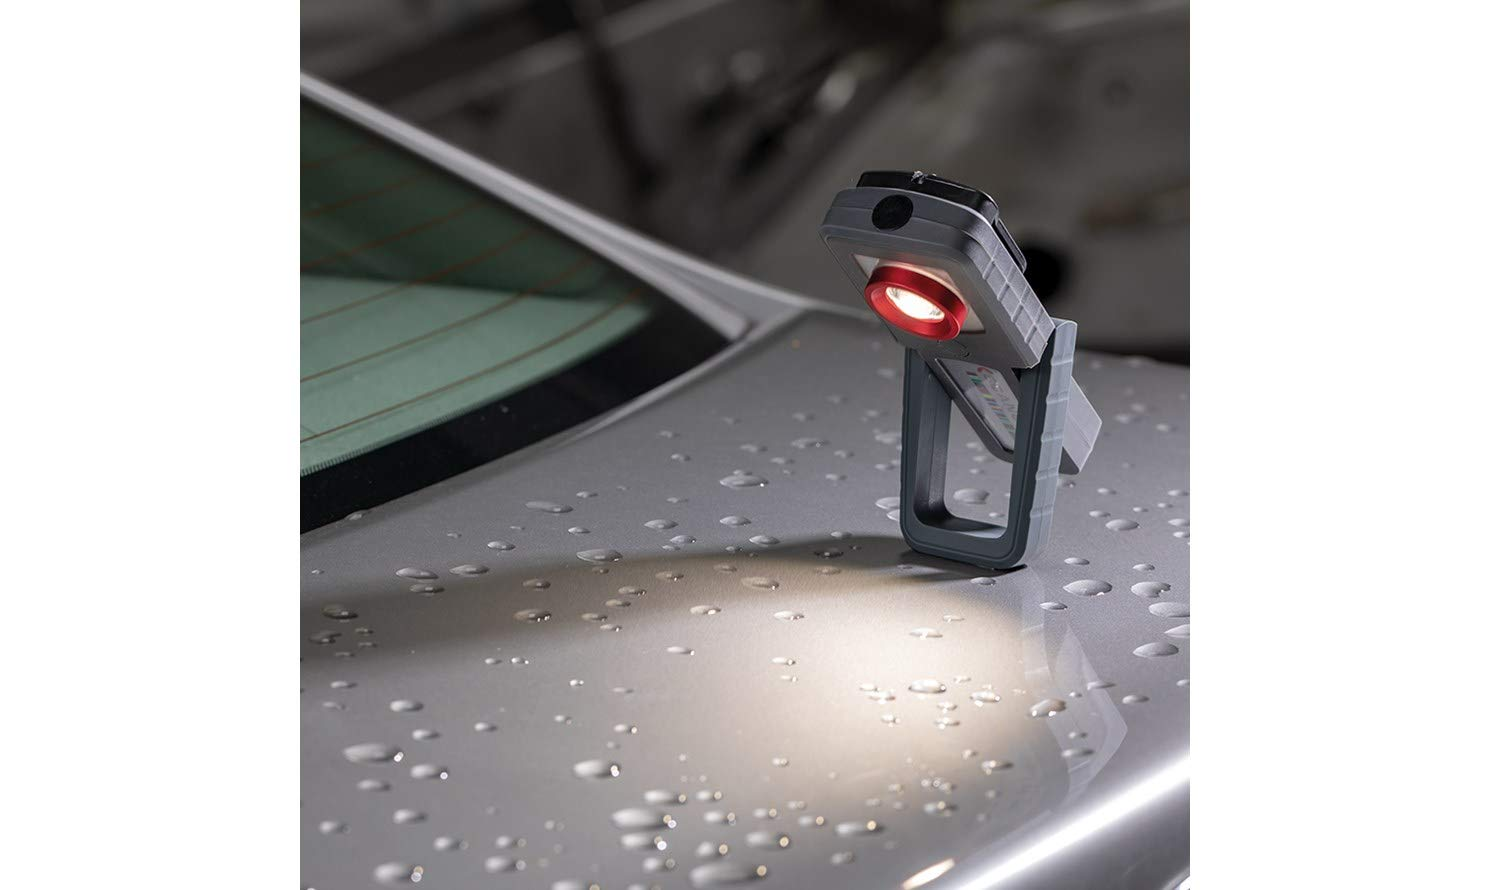 Scangrip New Professional Sunmatch 3, Rechargeable Work Light for Detailing and Color Match